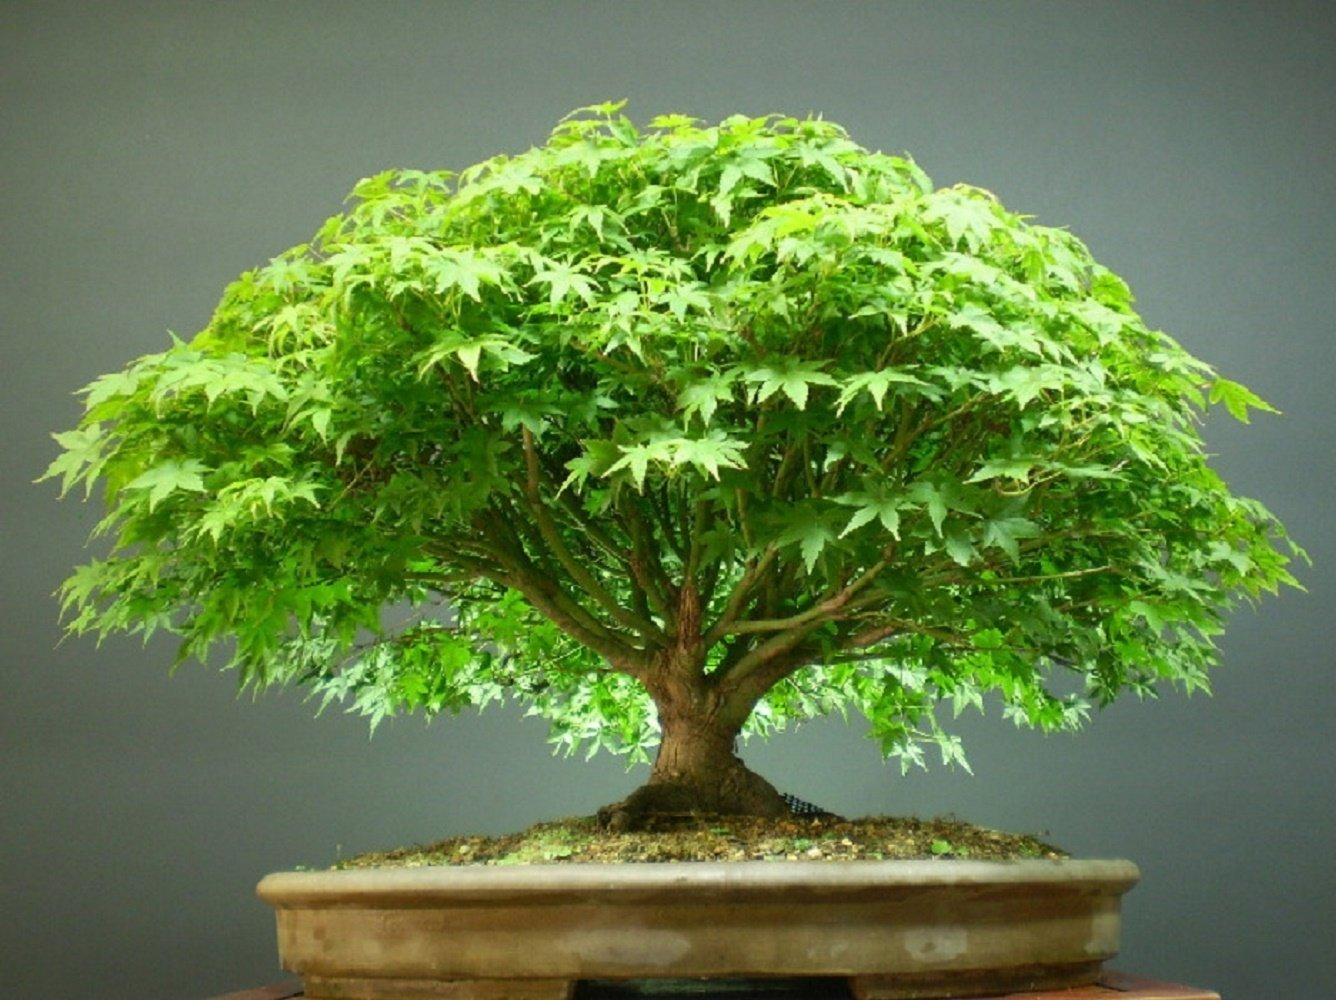 Bonsai Plants Care Tips For Beginners General Guideline Inspiration Home Magazine